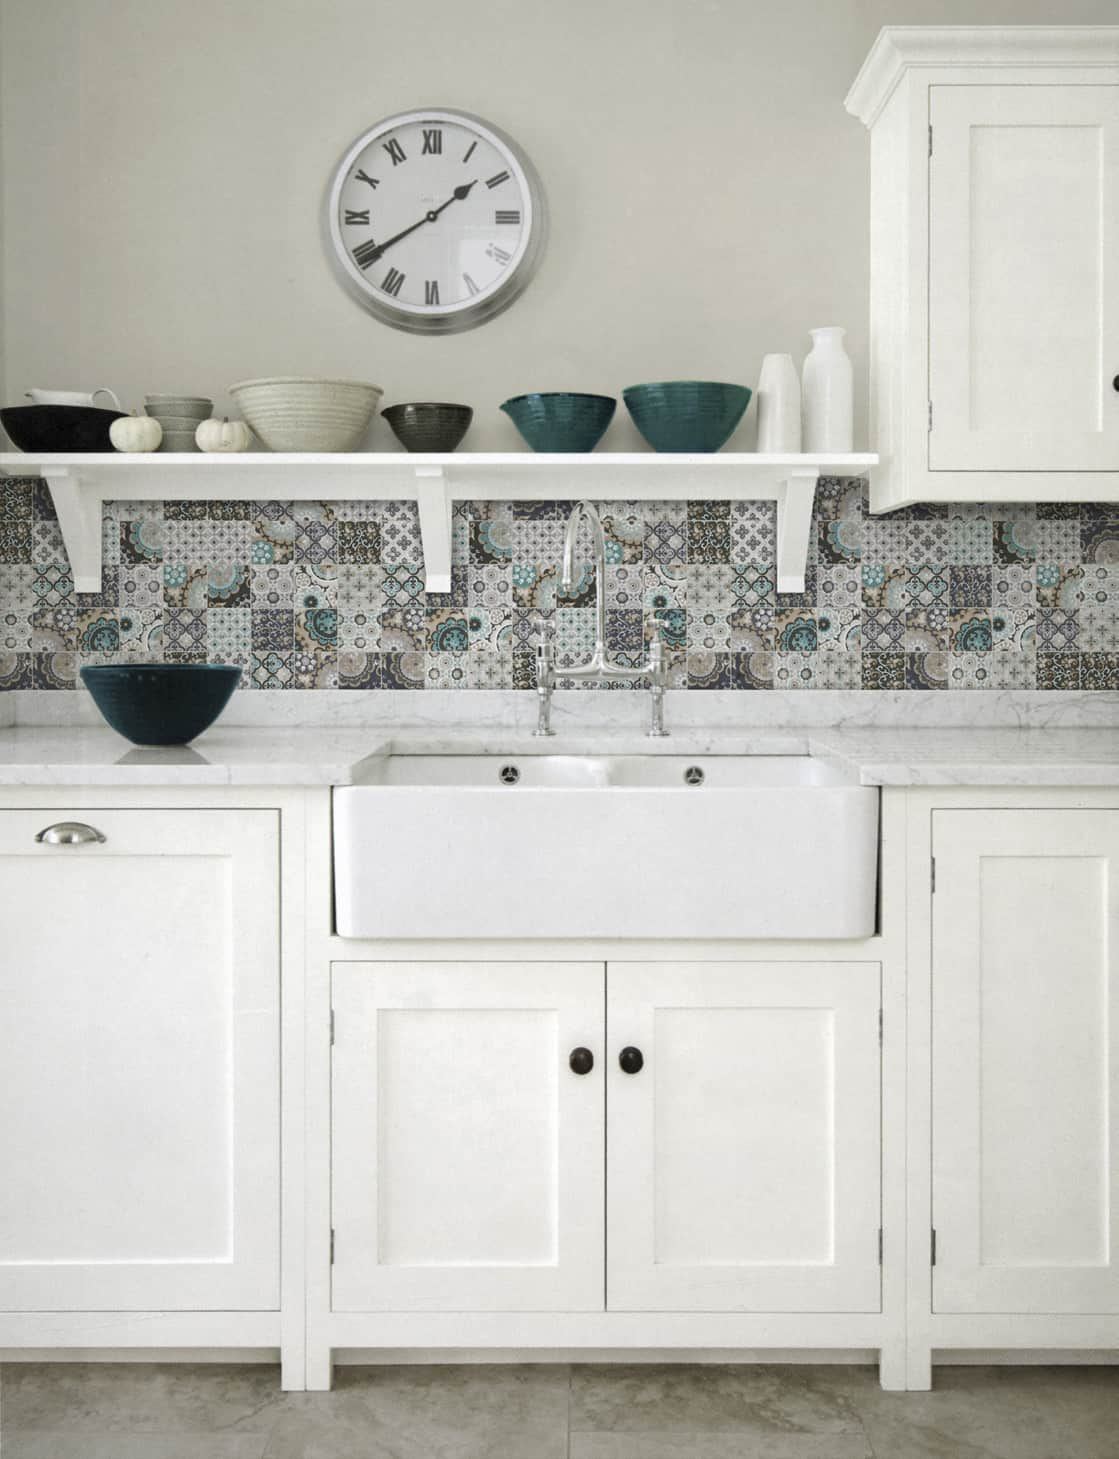 patchwork backsplash for country style kitchen ideas homestead by artistic tile. Black Bedroom Furniture Sets. Home Design Ideas